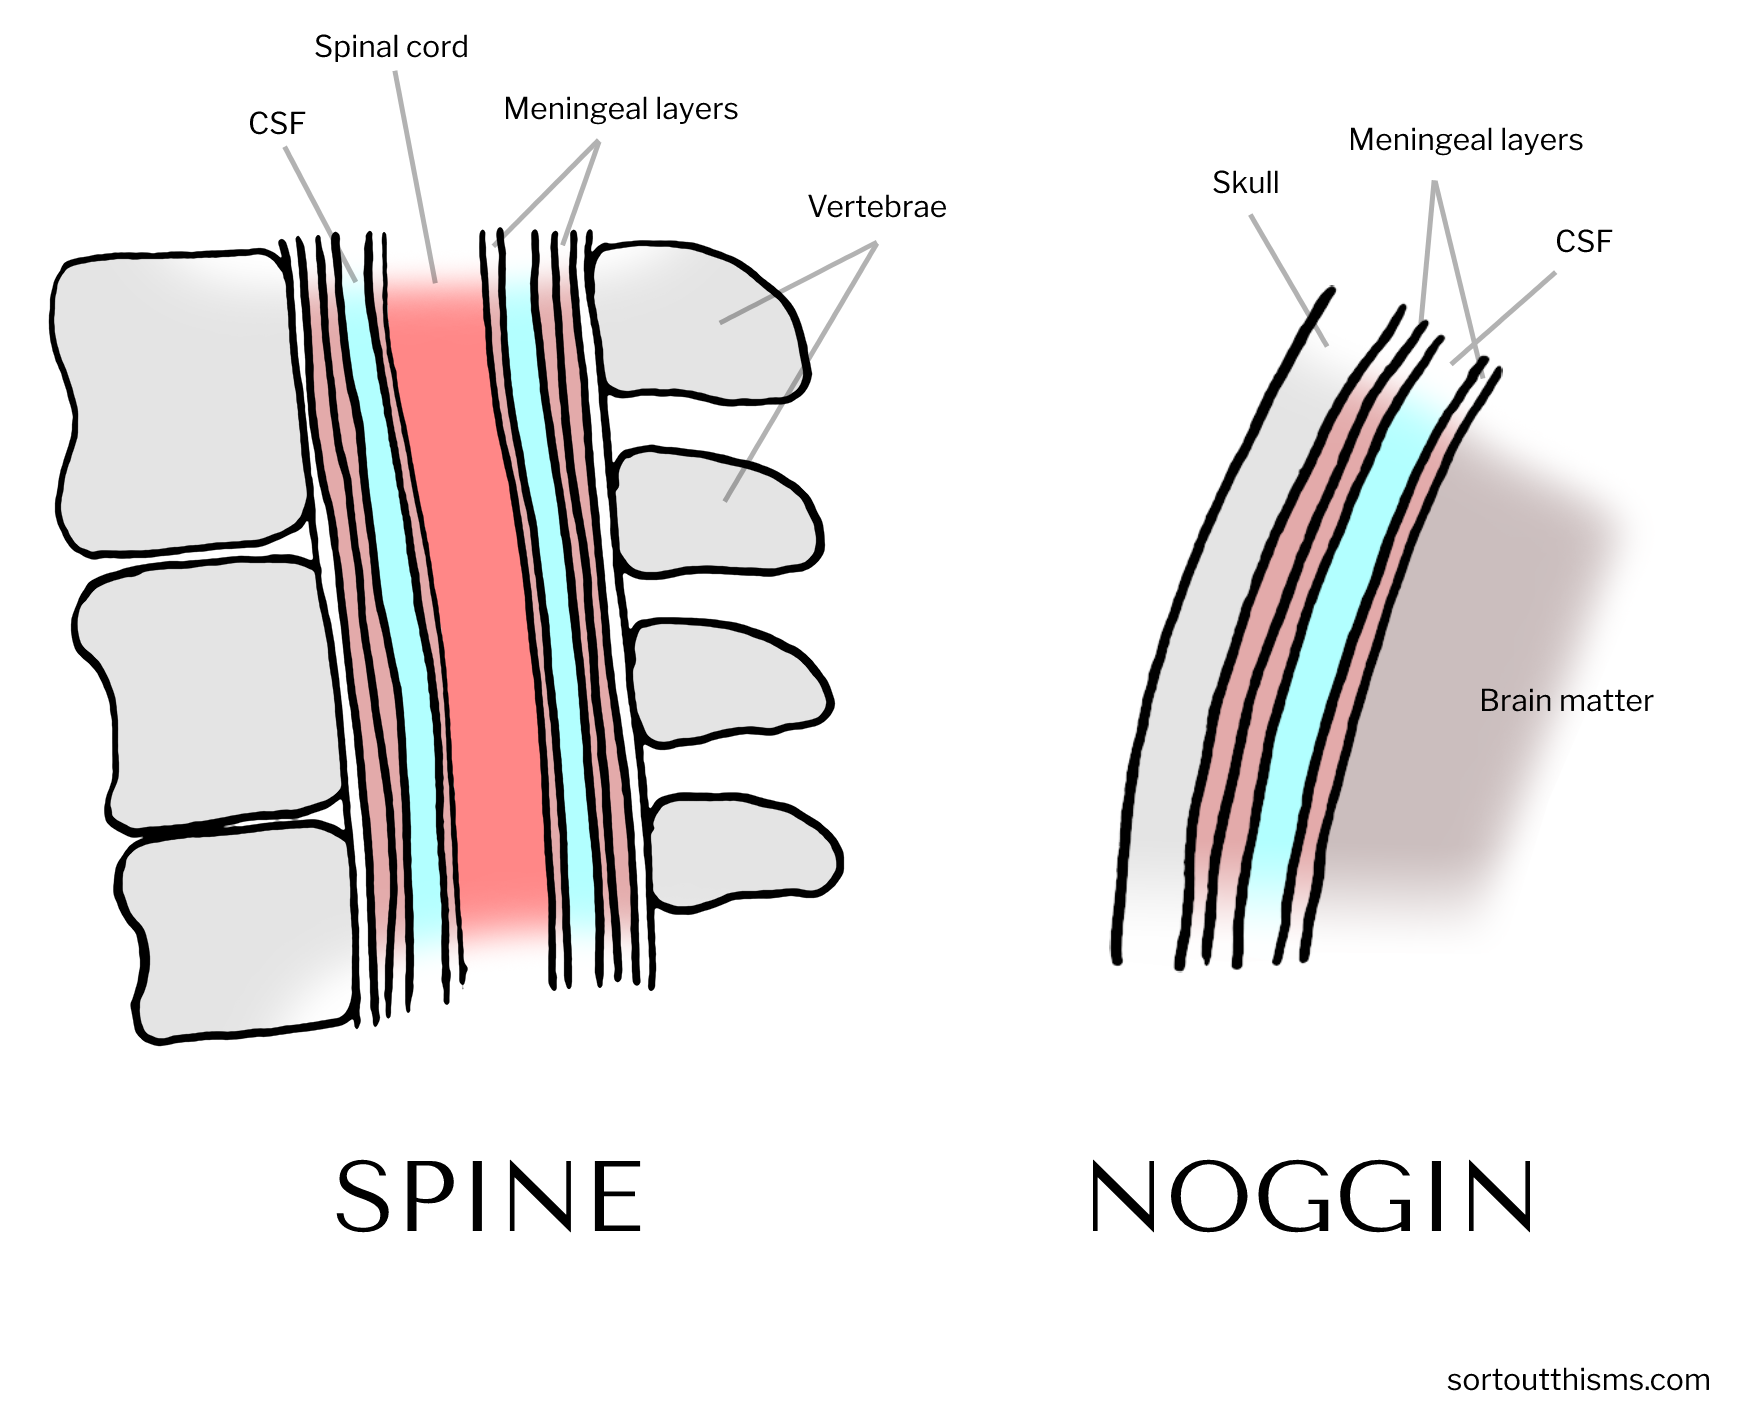 Spine and noggin in the central nervous system | Sort Out This MS